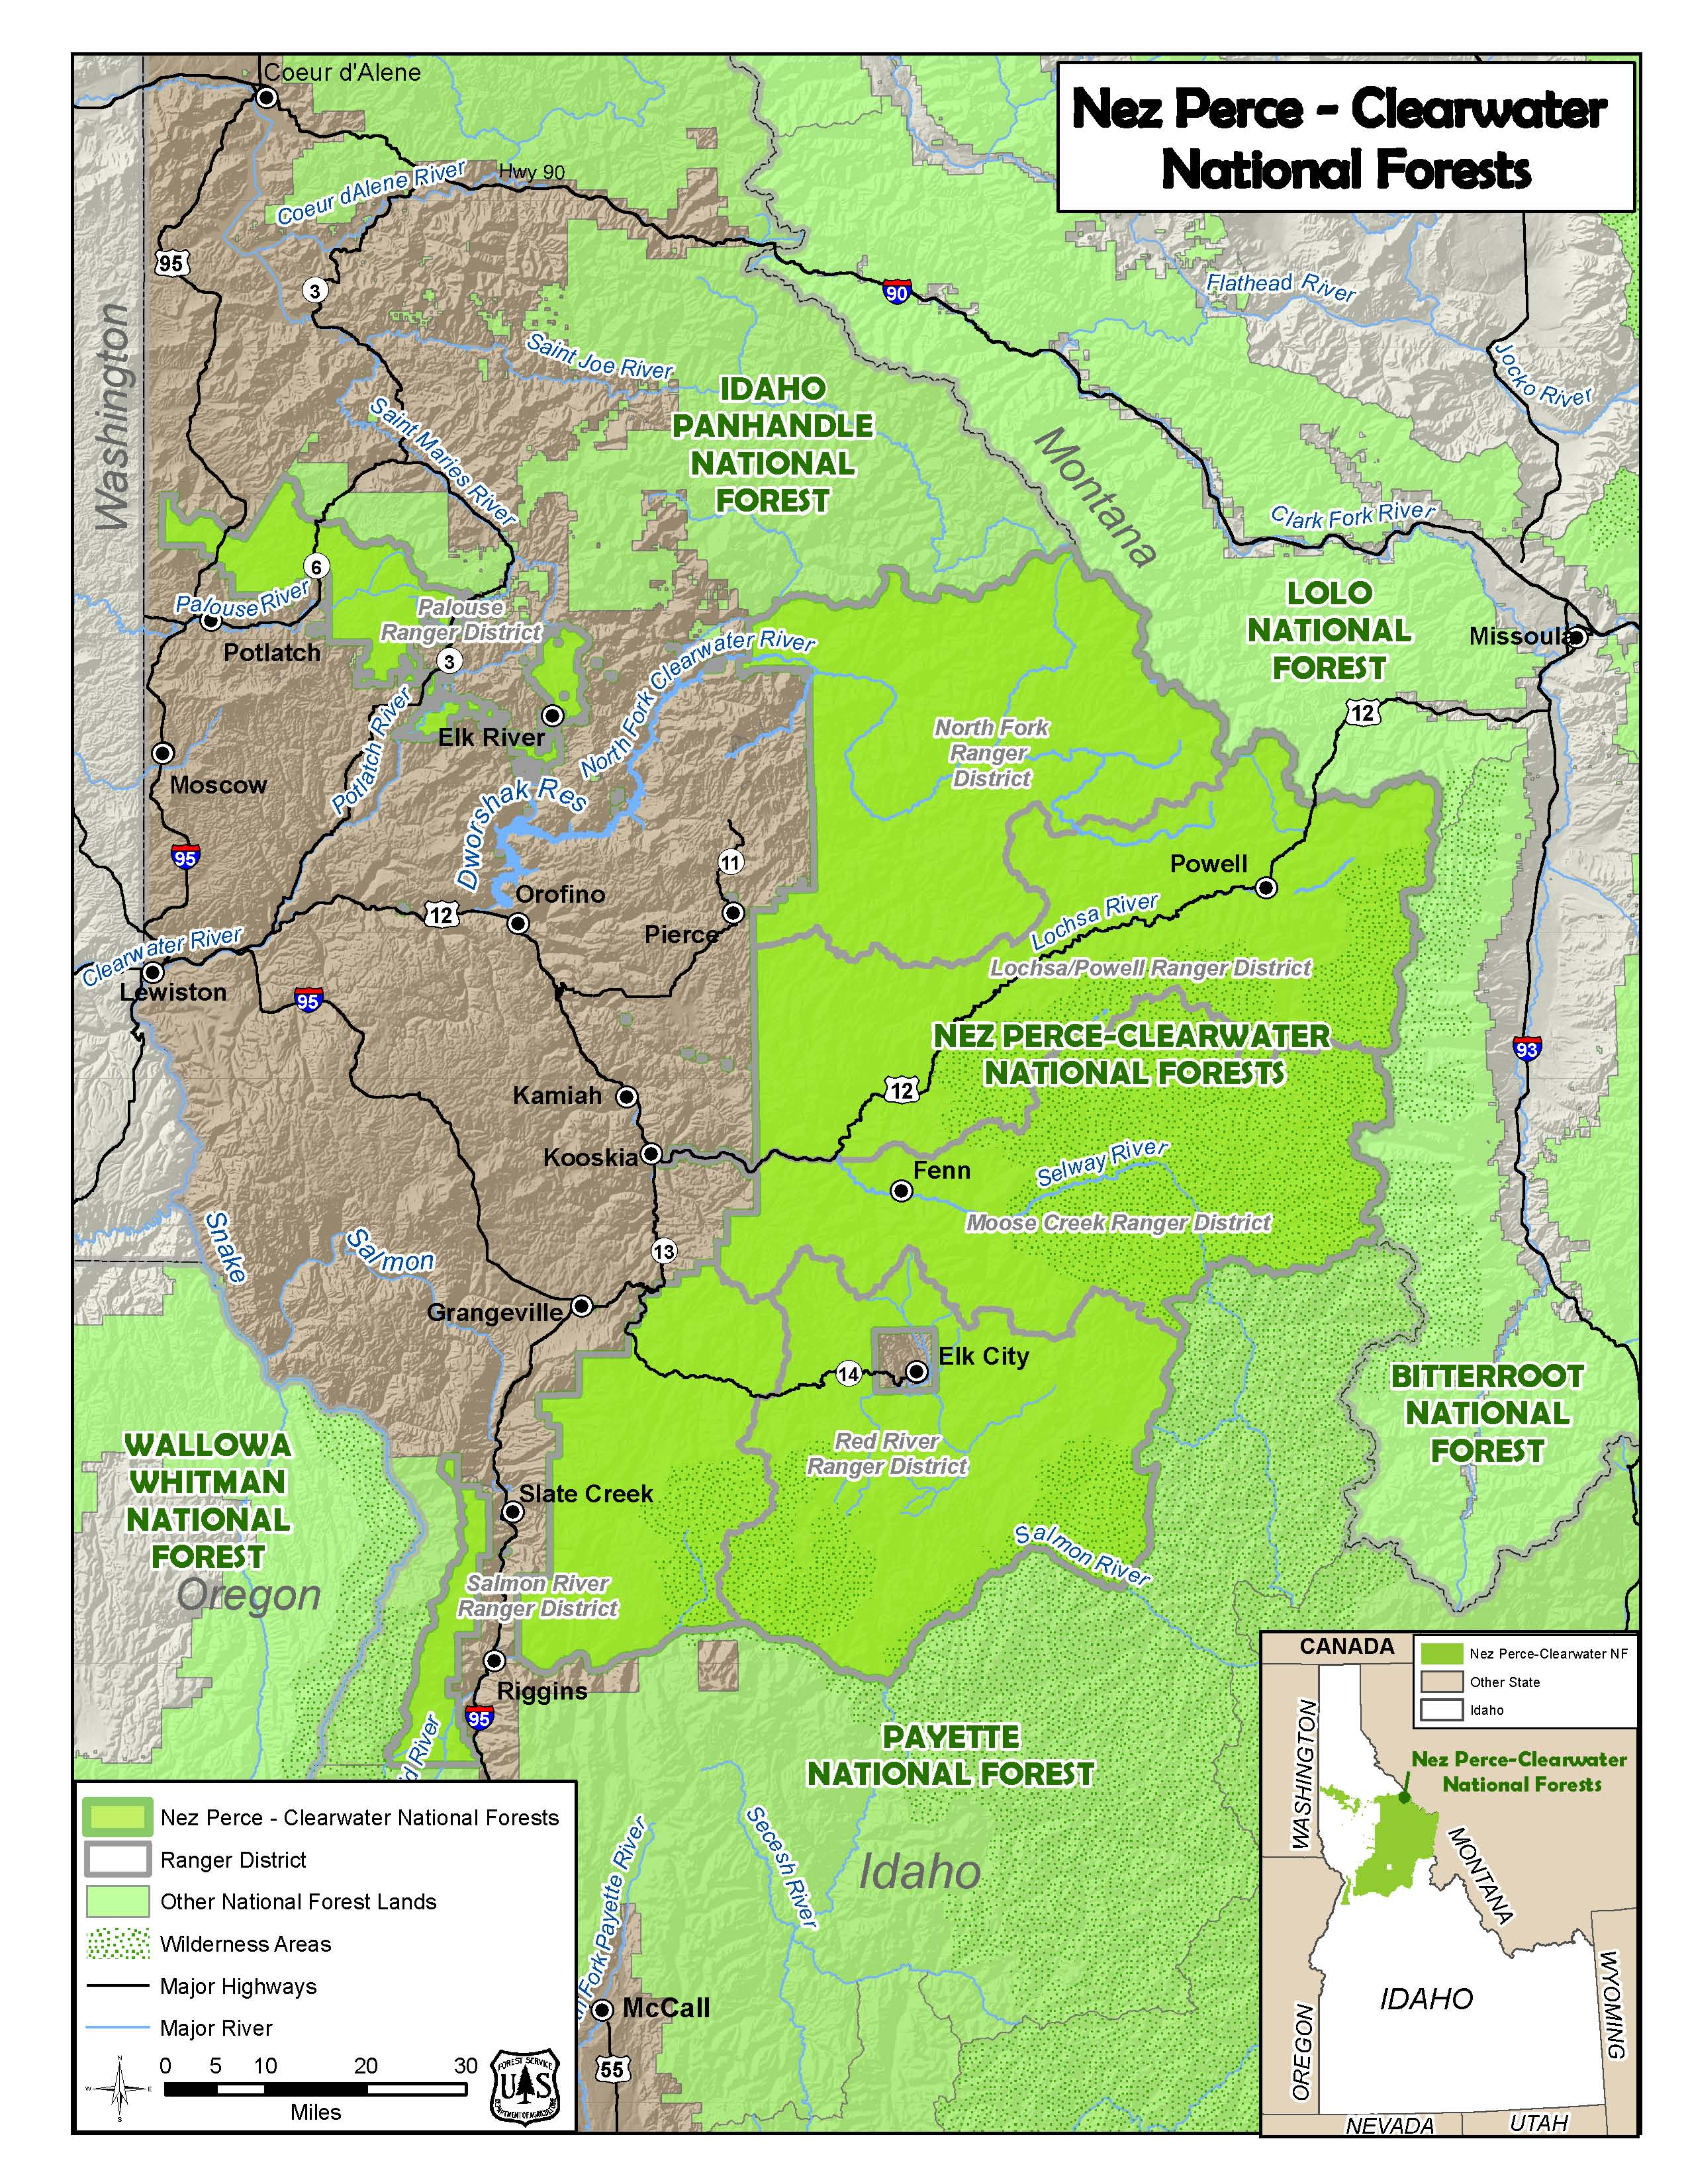 Colored Map shows the combined Nez Perce and Clearwater Forests and Districts